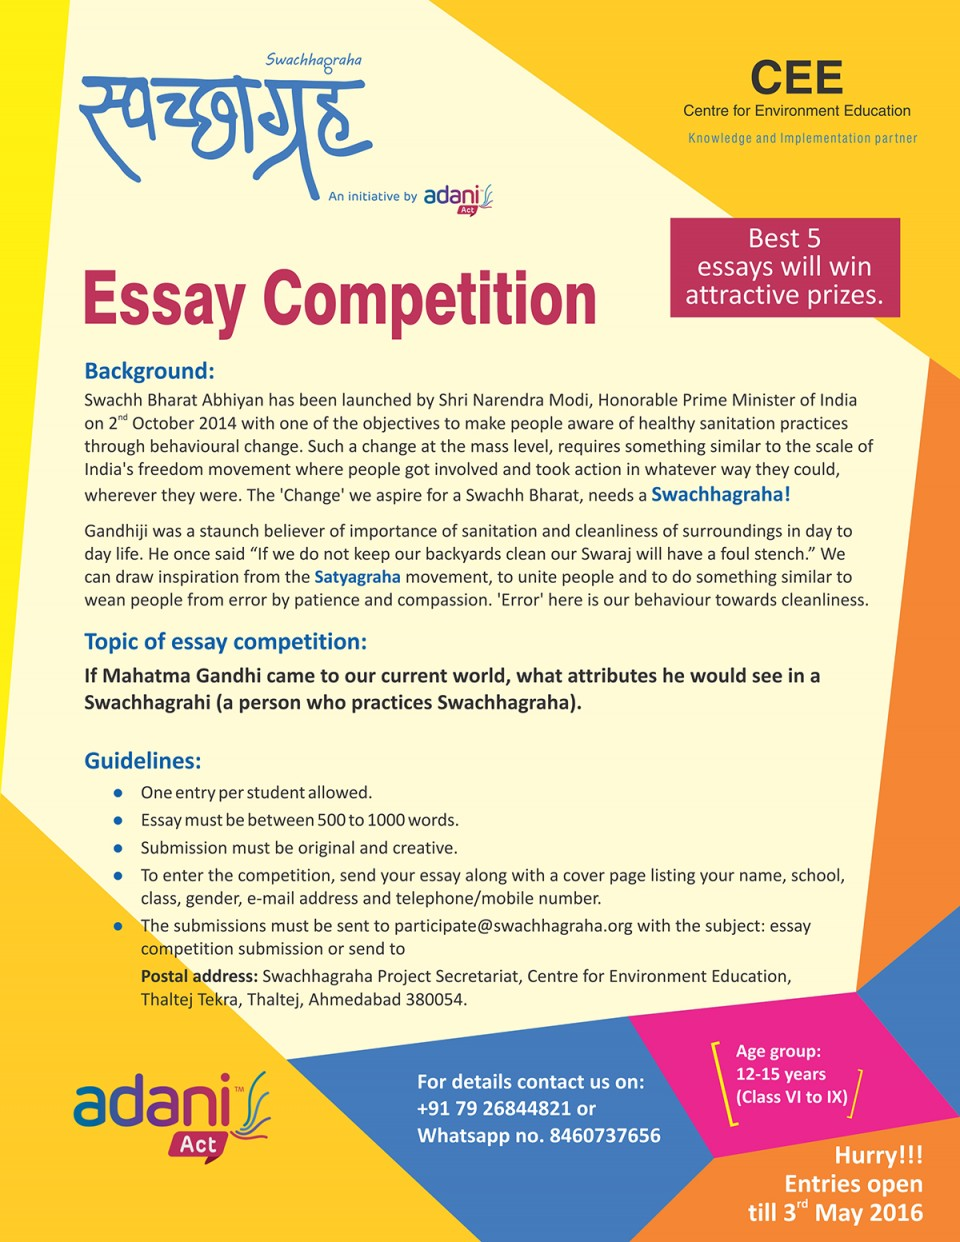 011 20180129171946essay20competition Essay About Cleanliness In School Phenomenal On Toilet And Its Surrounding Writing Hygiene Practices 960